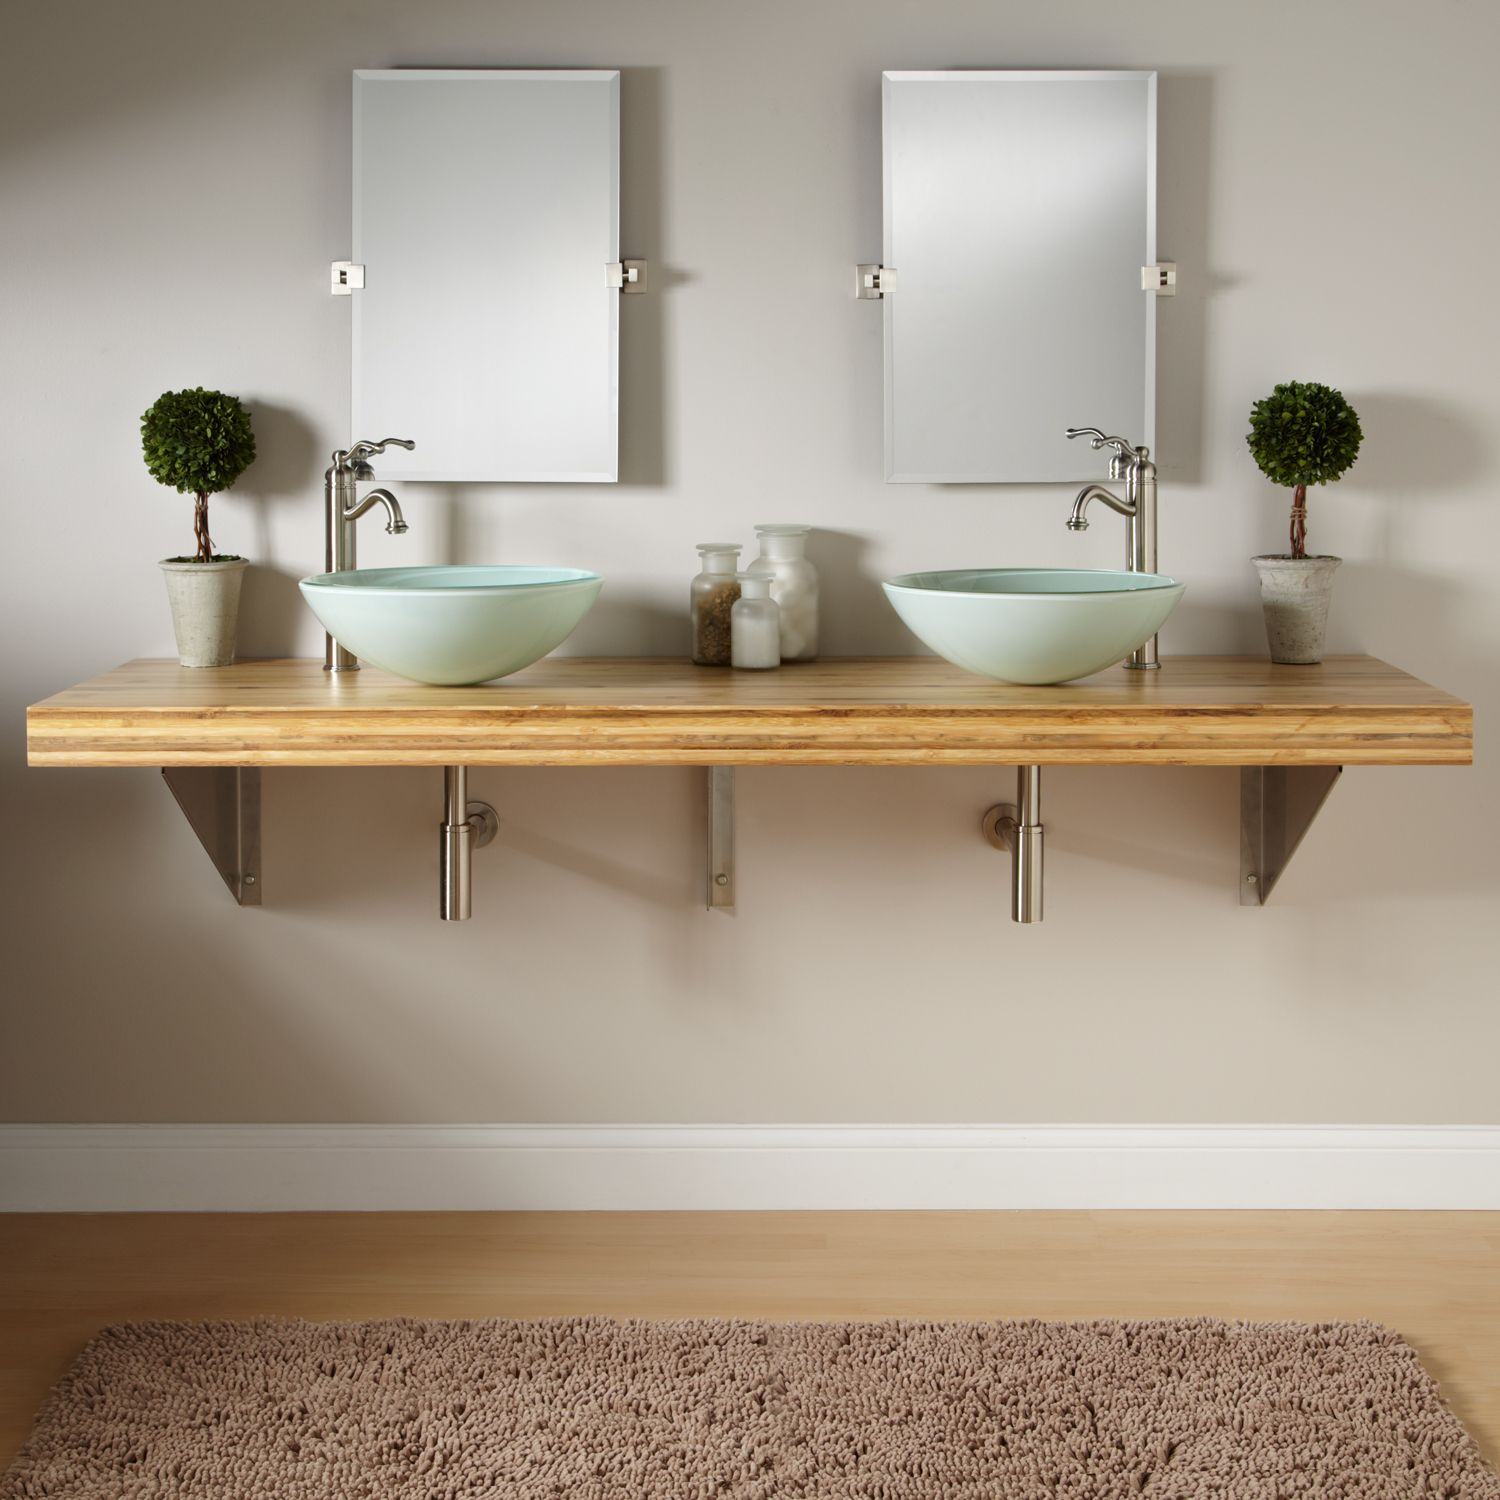 $1,224.95 Bamboo Wall Mount Vanity For Vessel Sinks   Triangular Brackets  Material: Bamboo U202273